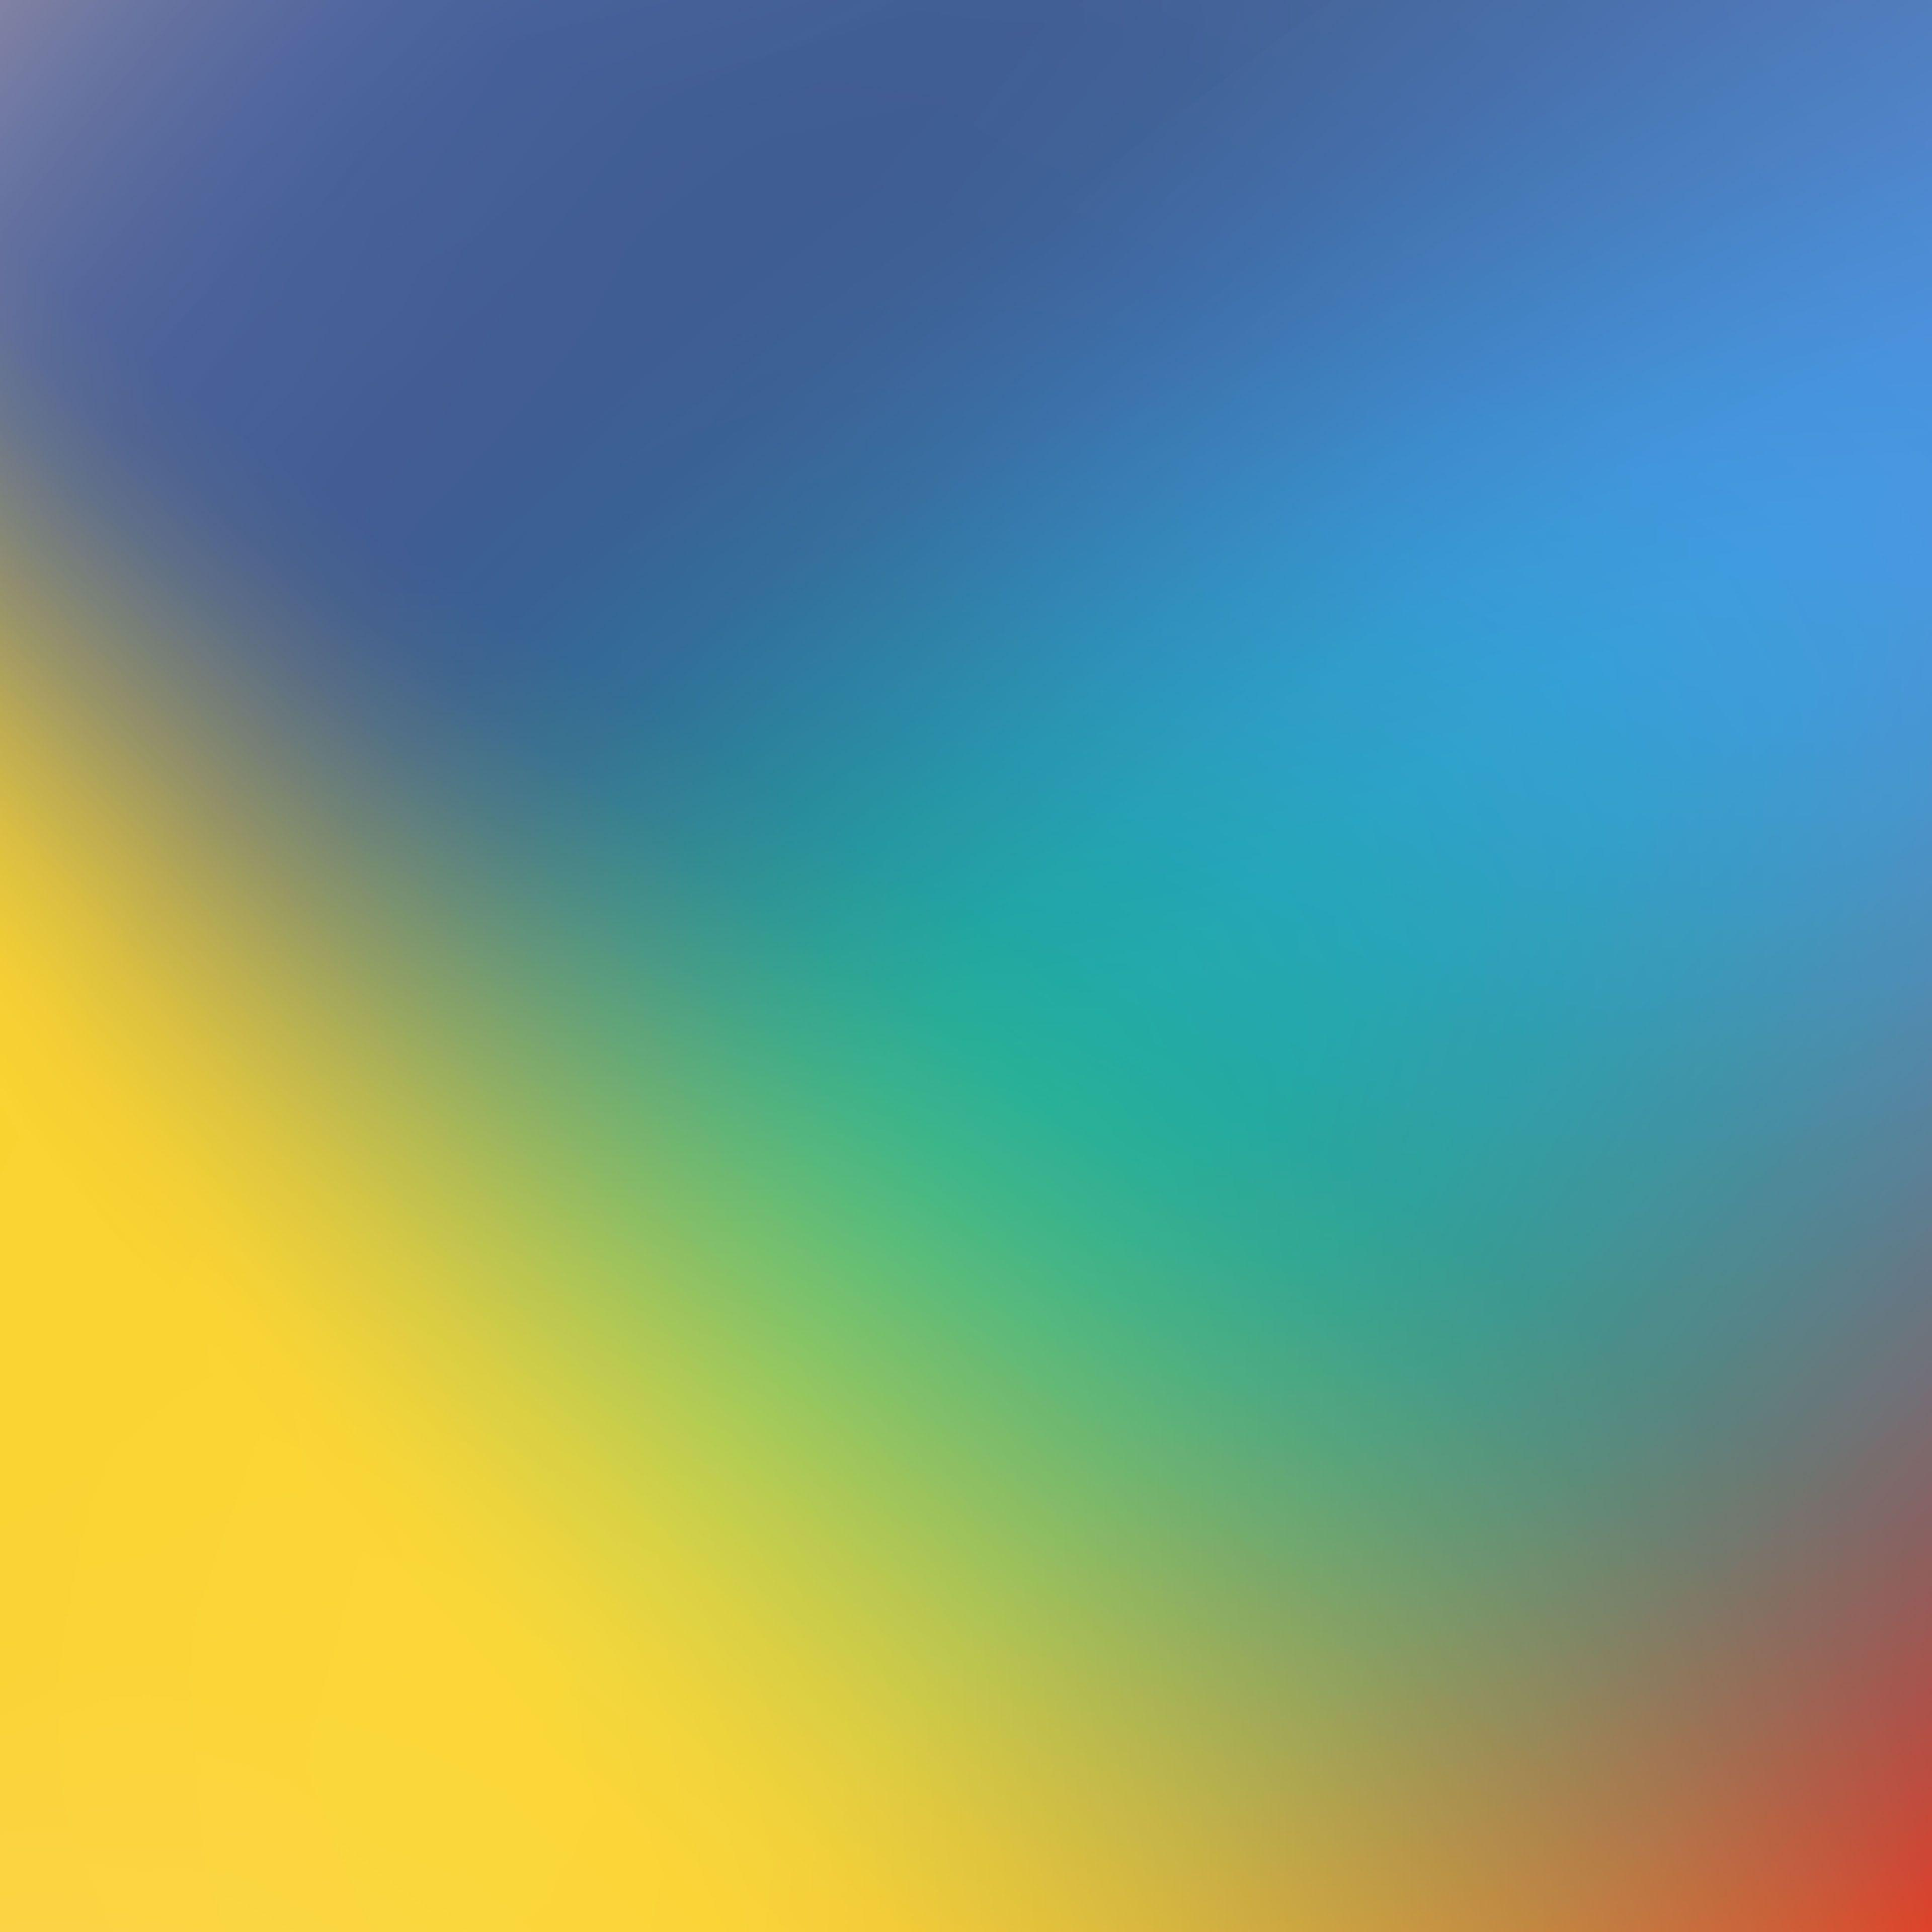 Orange And Yellow Gradient Wallpapers Wallpaper Cave